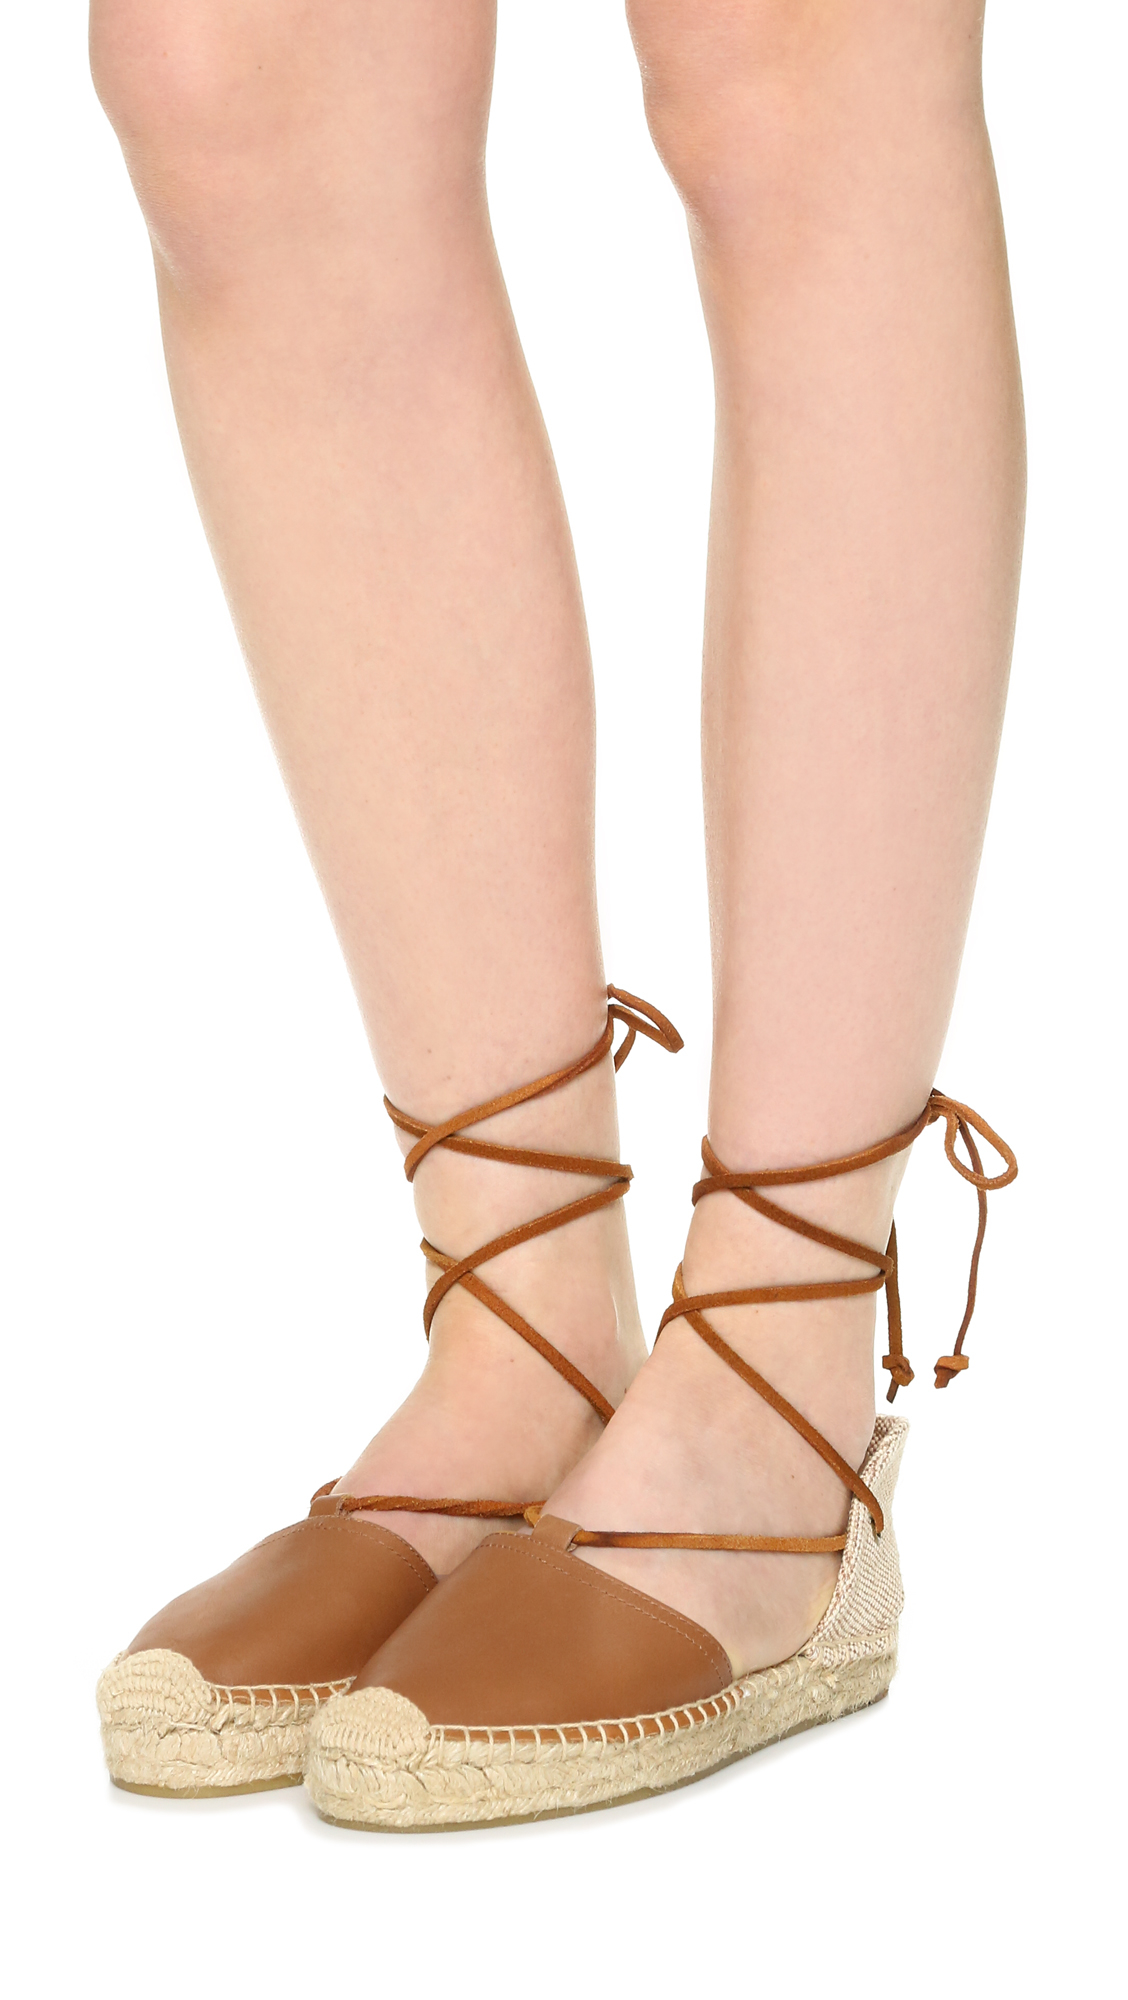 1ffb8fef331 Lyst - Soludos Platform Gladiator Sandals in Brown